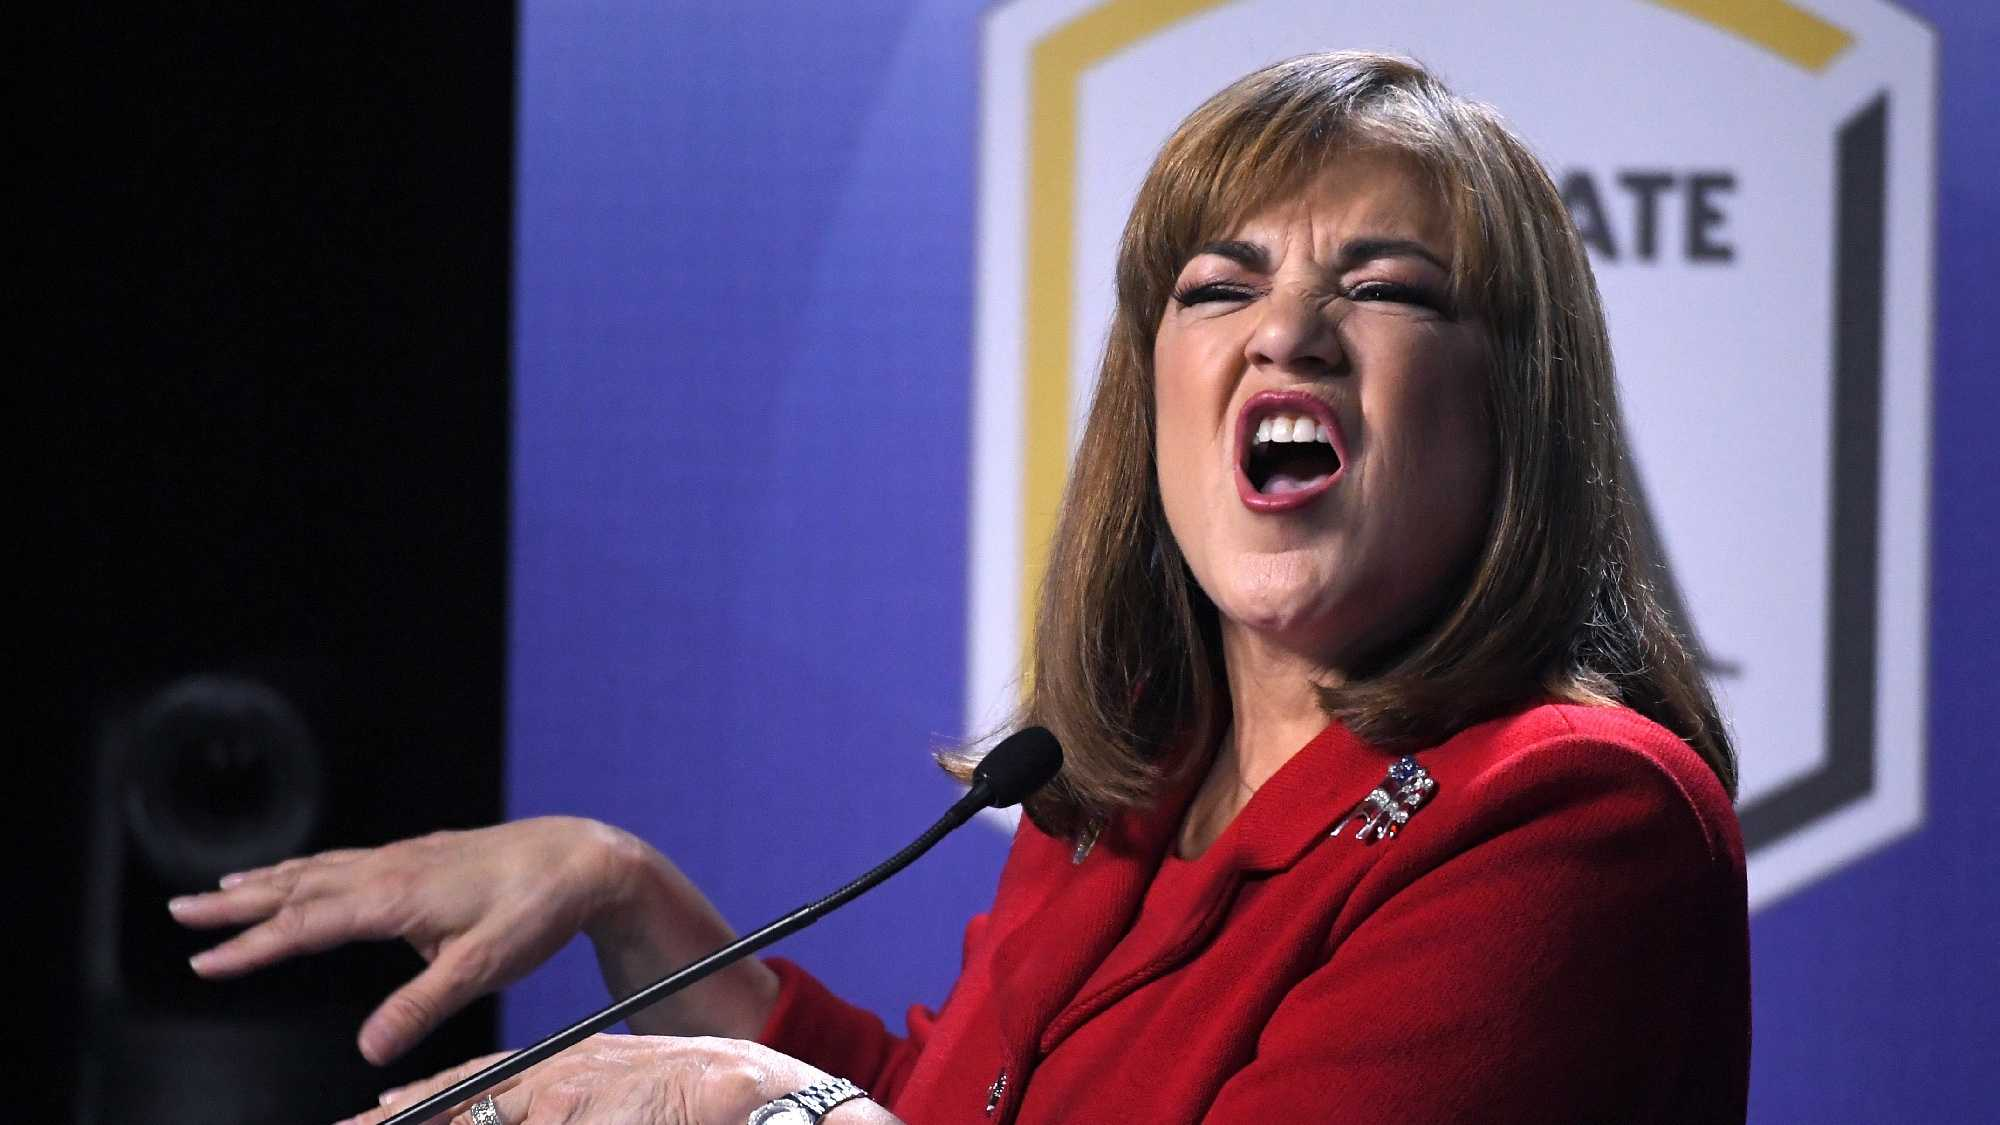 California U.S. Senate Democratic candidate Congresswoman Loretta Sanchez speaks during a debate against California Attorney General Kamala Harris, Wednesday, Oct. 5, 2016, in Los Angeles.